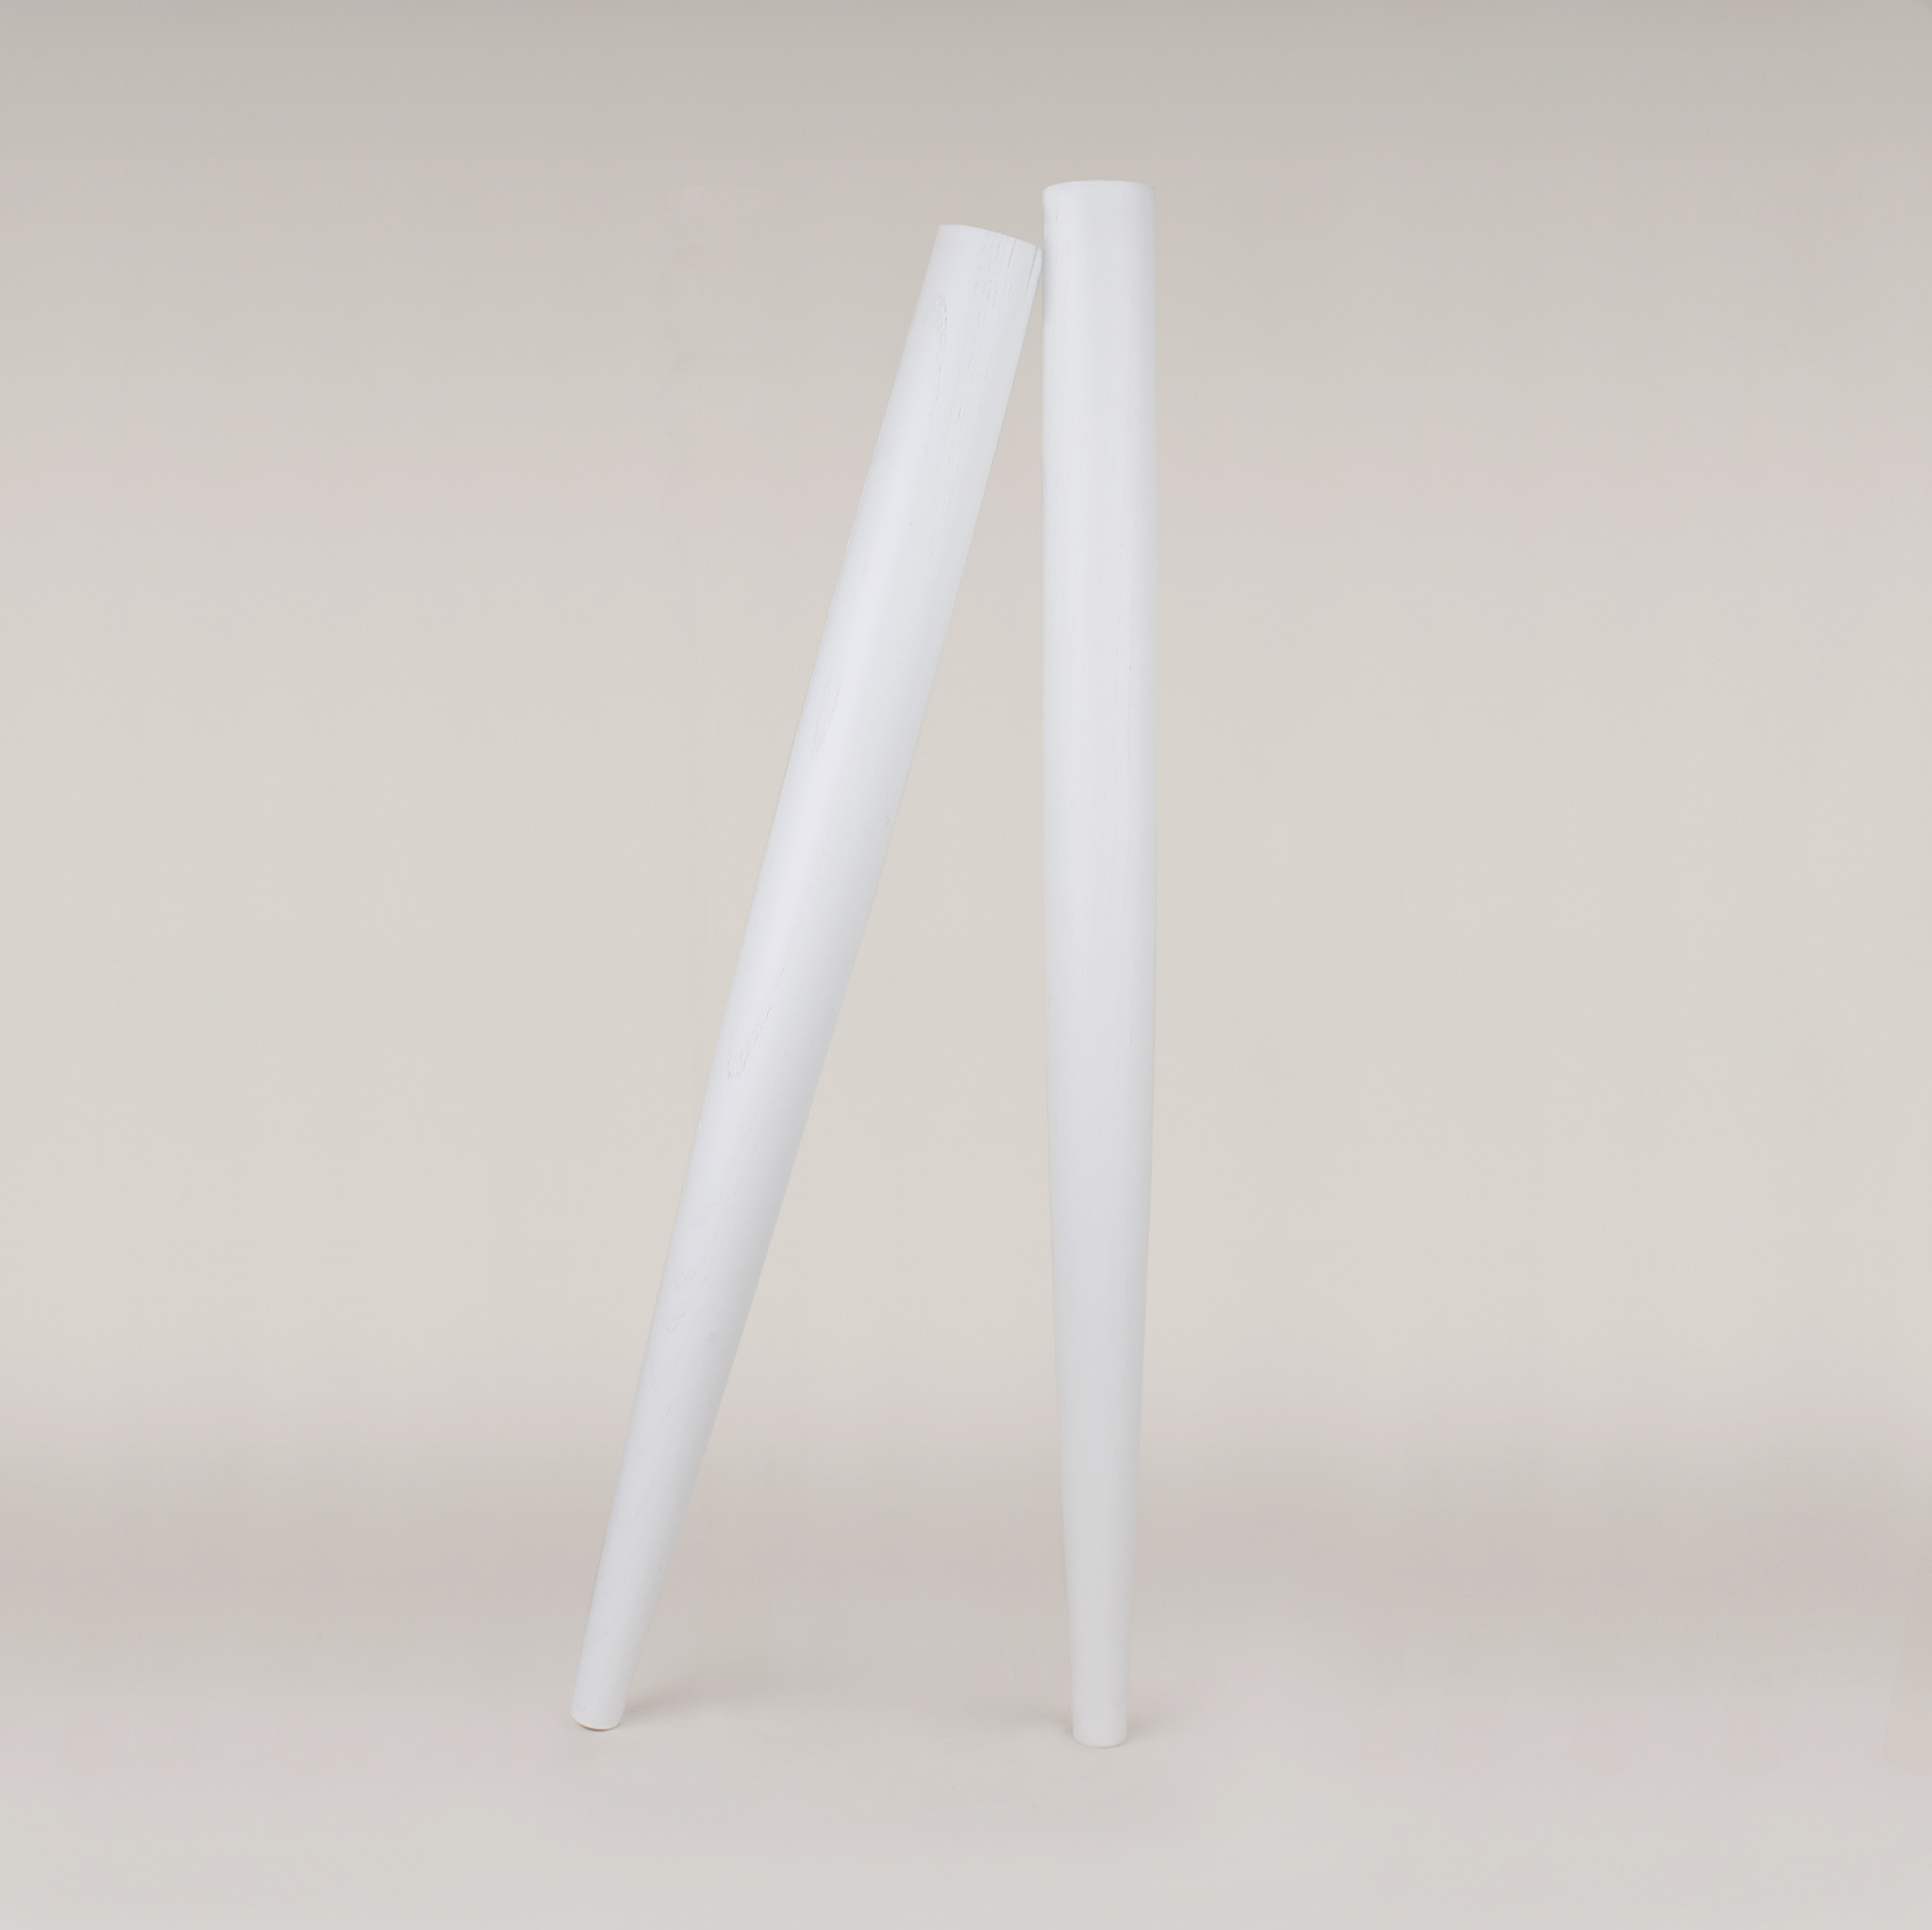 Carl 700 möbelben 4-pack white Prettypegs